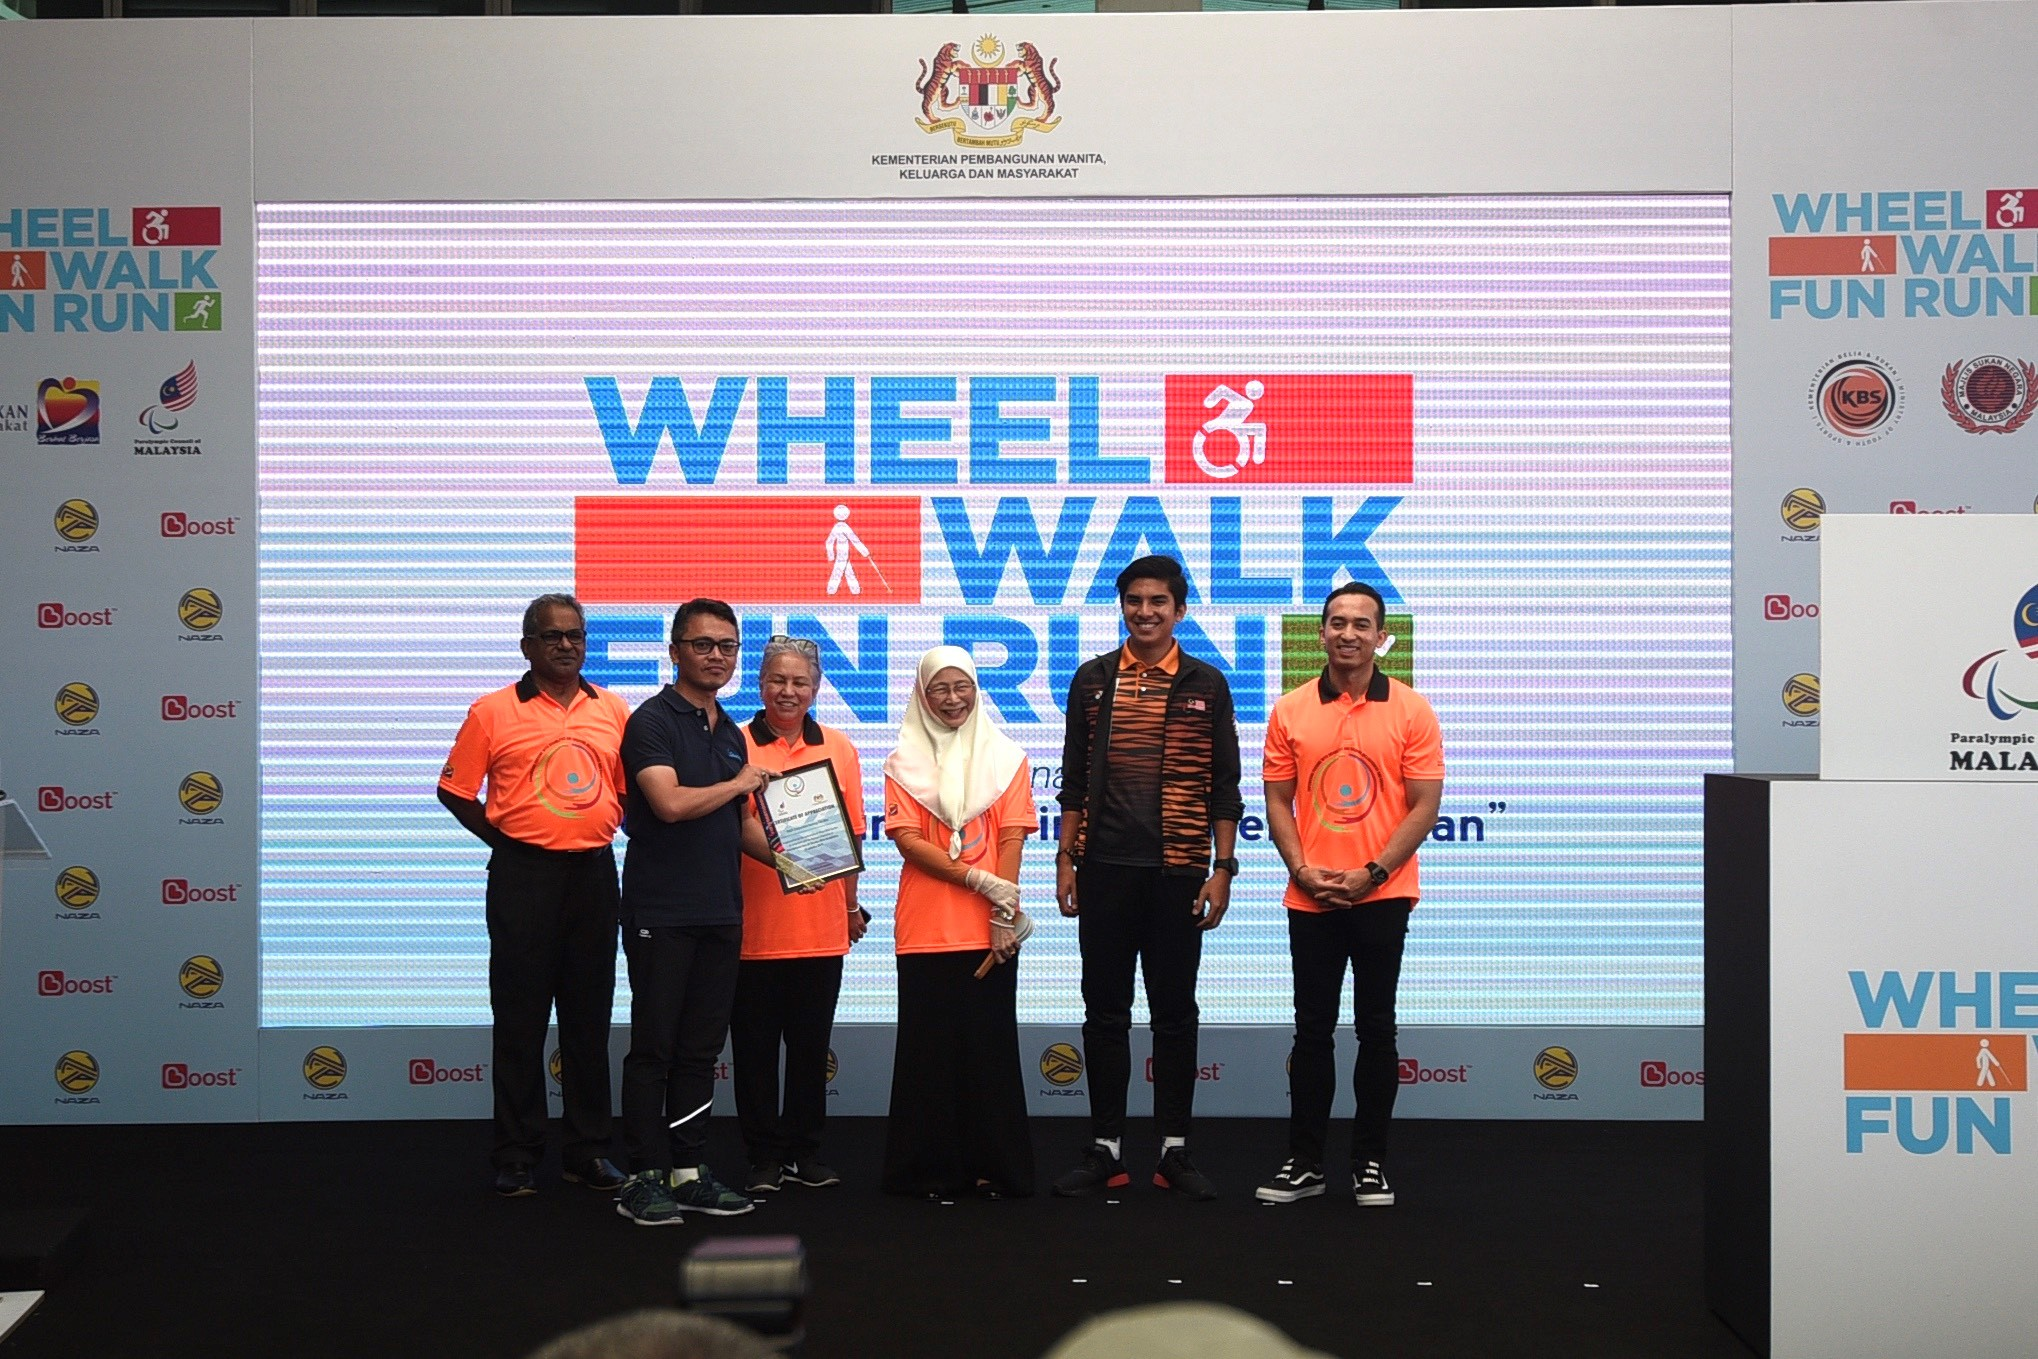 Naza Sponsors 'Wheel, Walk & Fun Run' Event 2019 - News and reviews